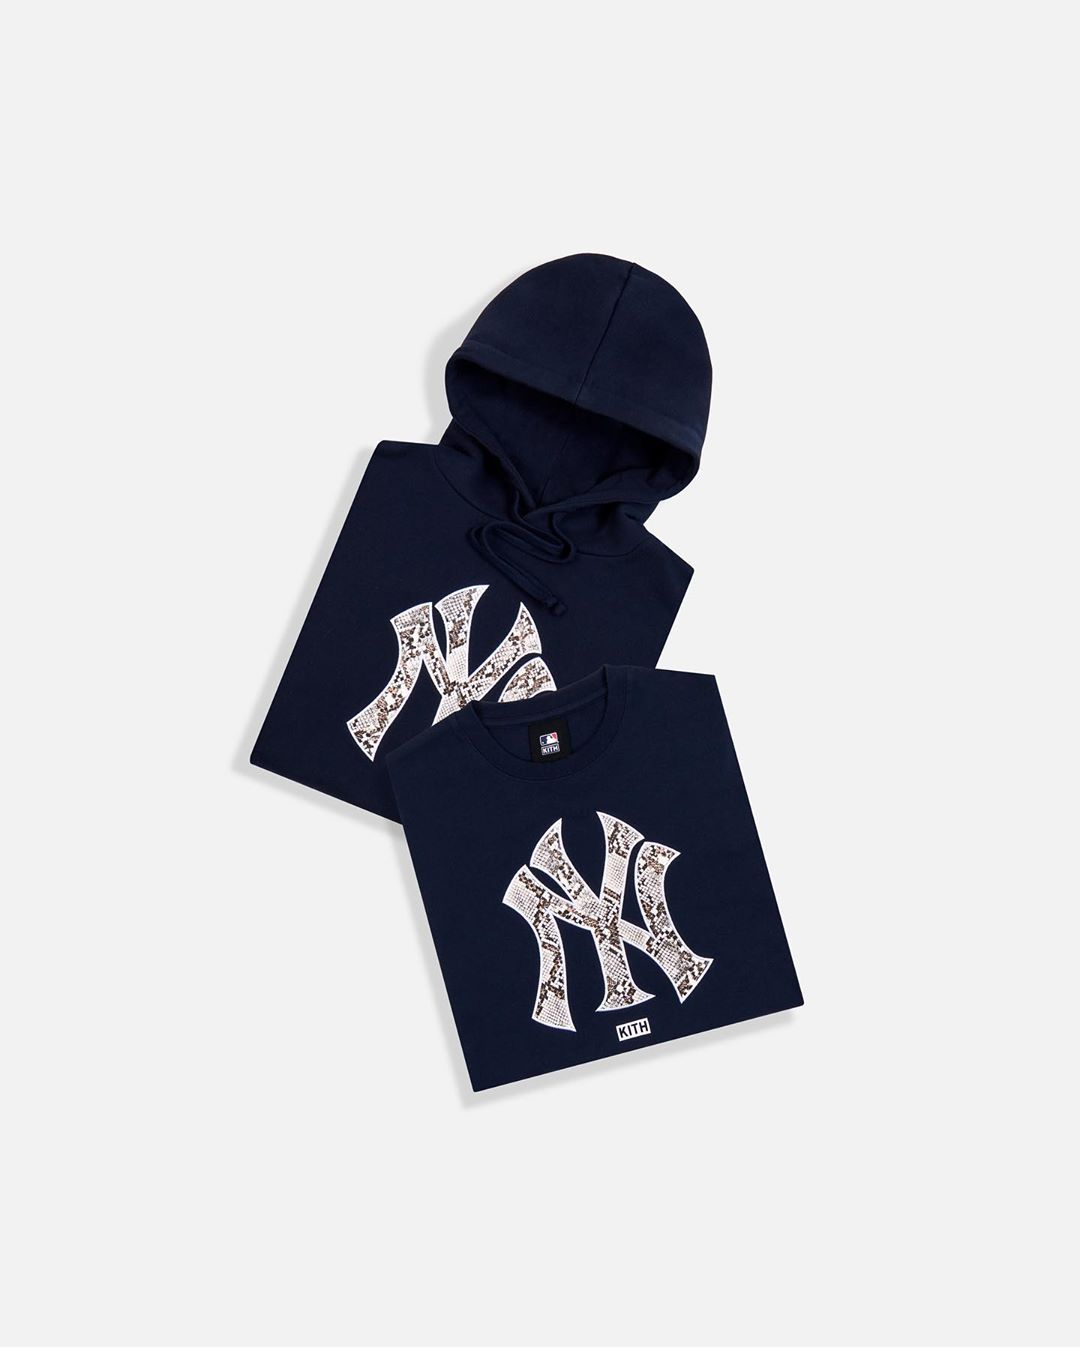 kith-new-york-yankees-los-angeles-dodgers-20aw-collaboration-release-20200921